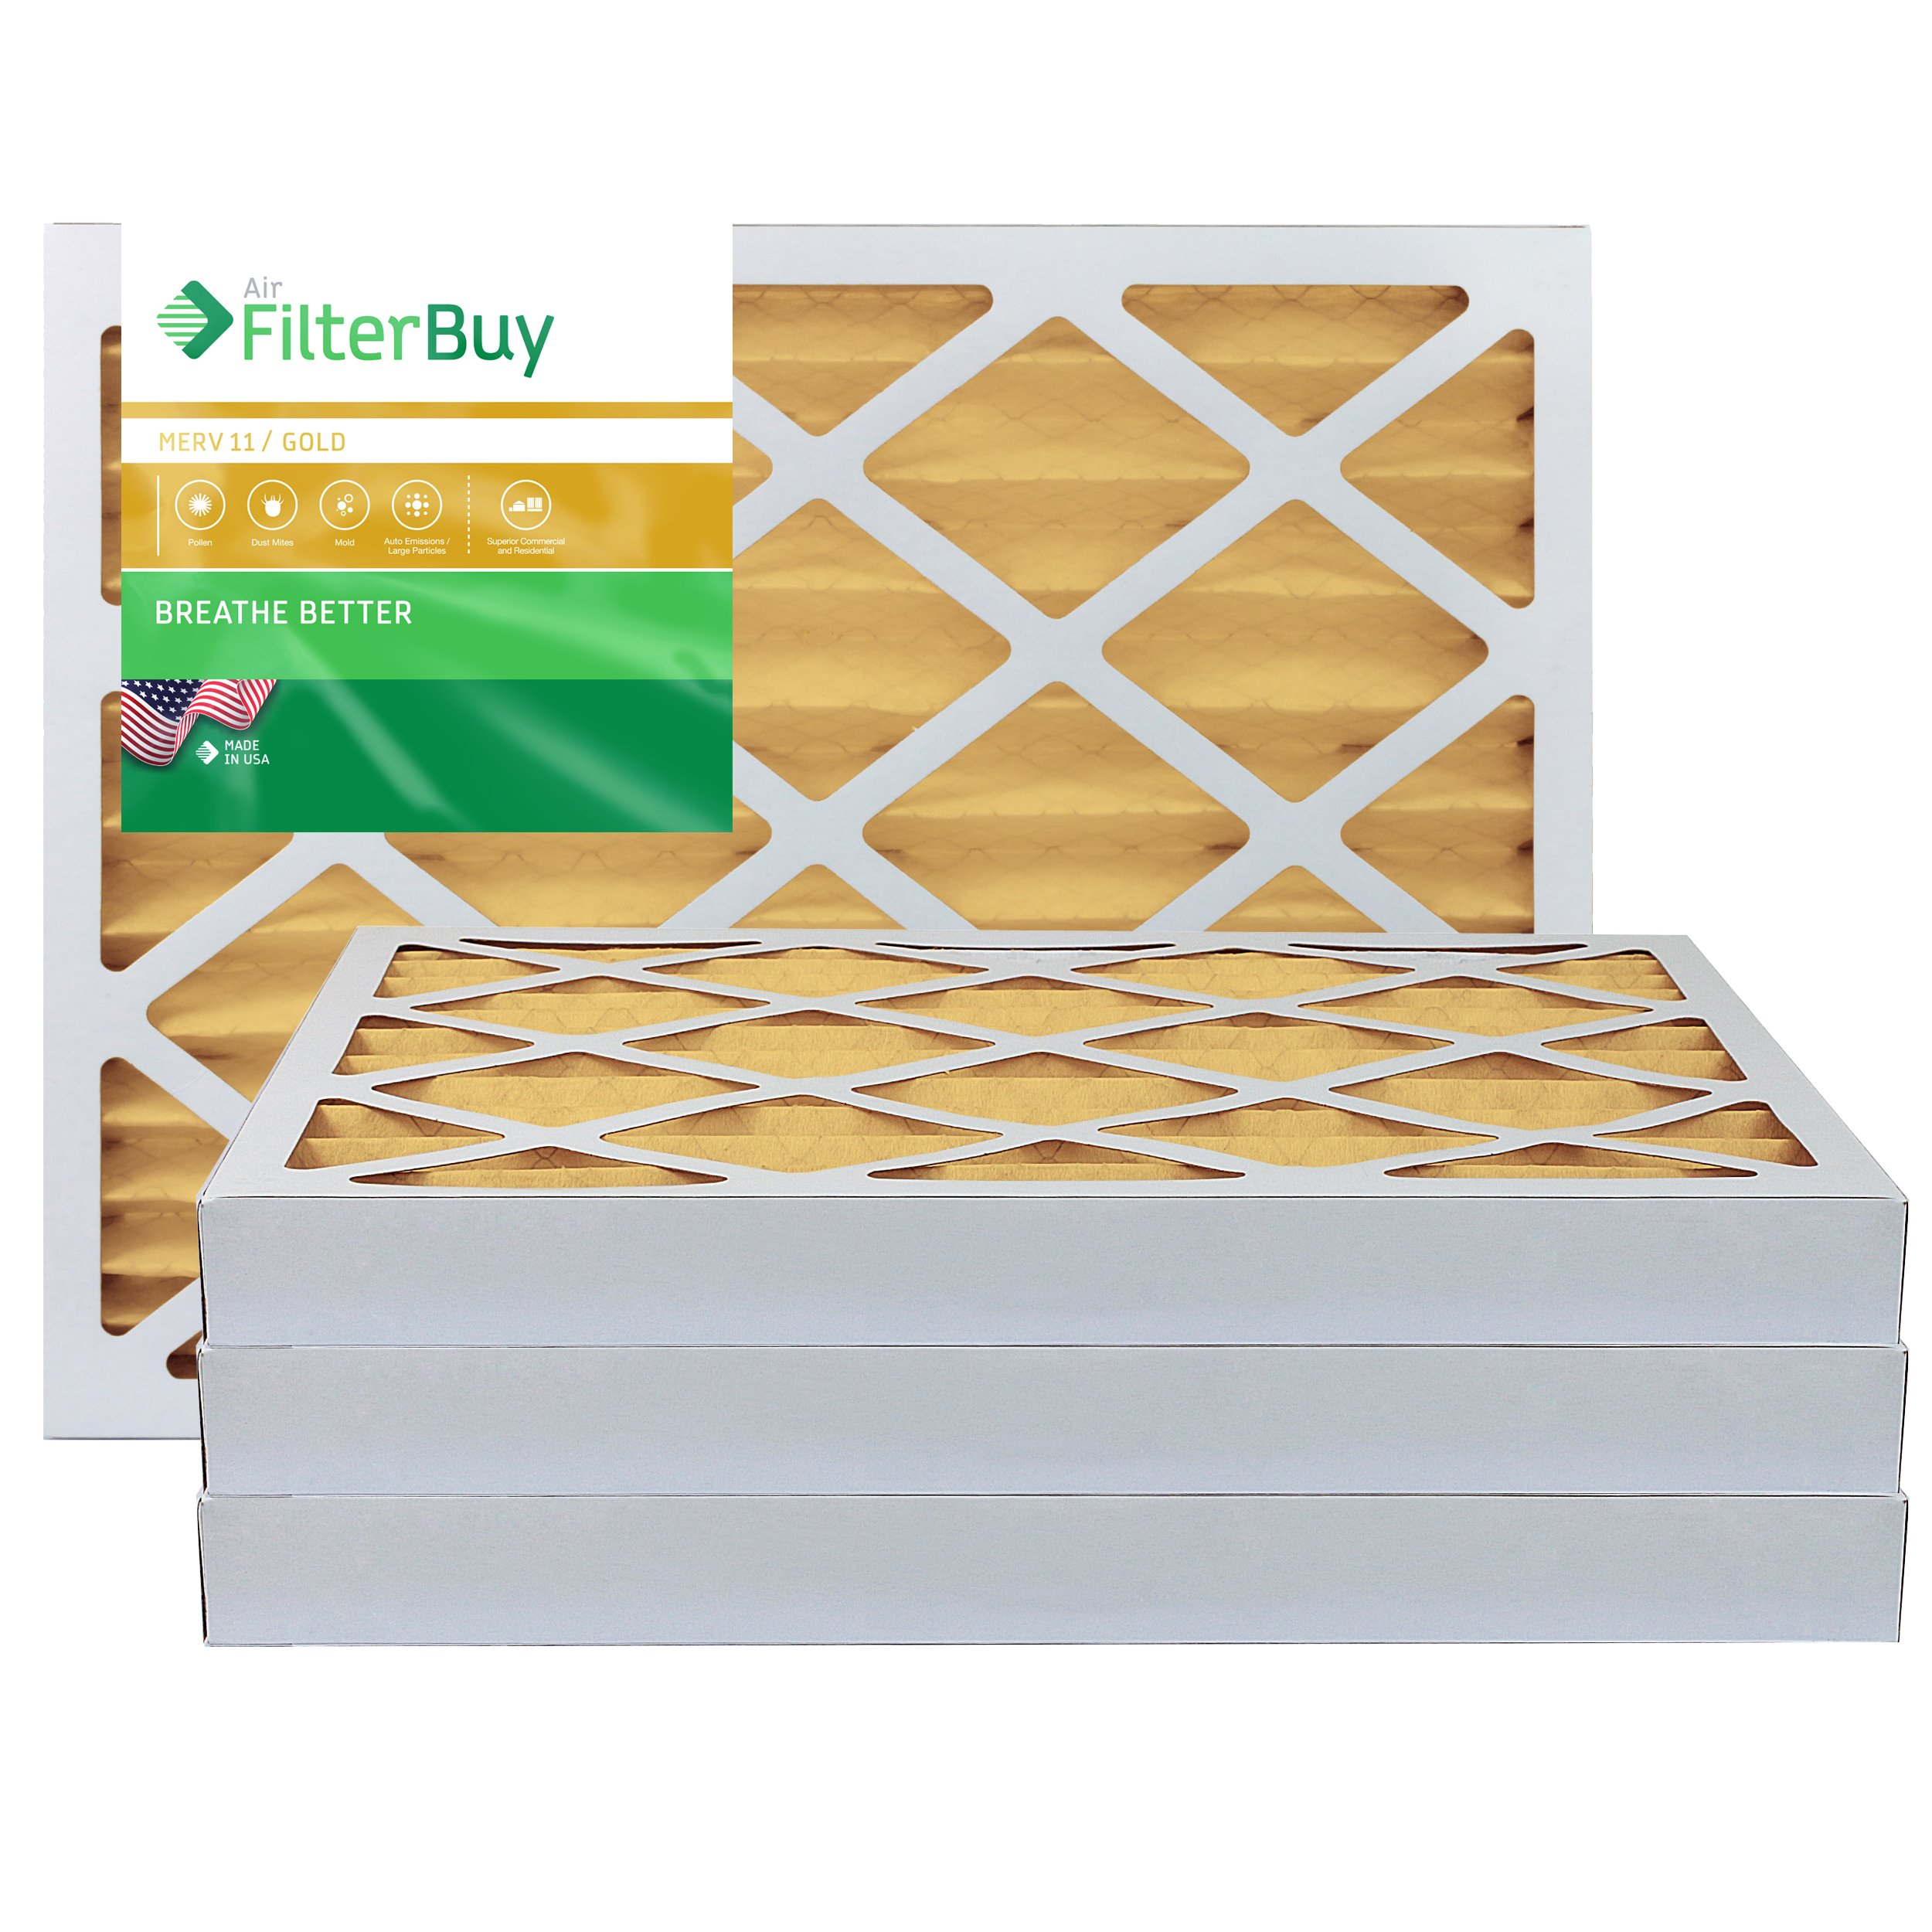 AFB Gold MERV 11 30x36x2 Pleated AC Furnace Air Filter. Pack of 4 Filters. 100% produced in the USA. by FilterBuy